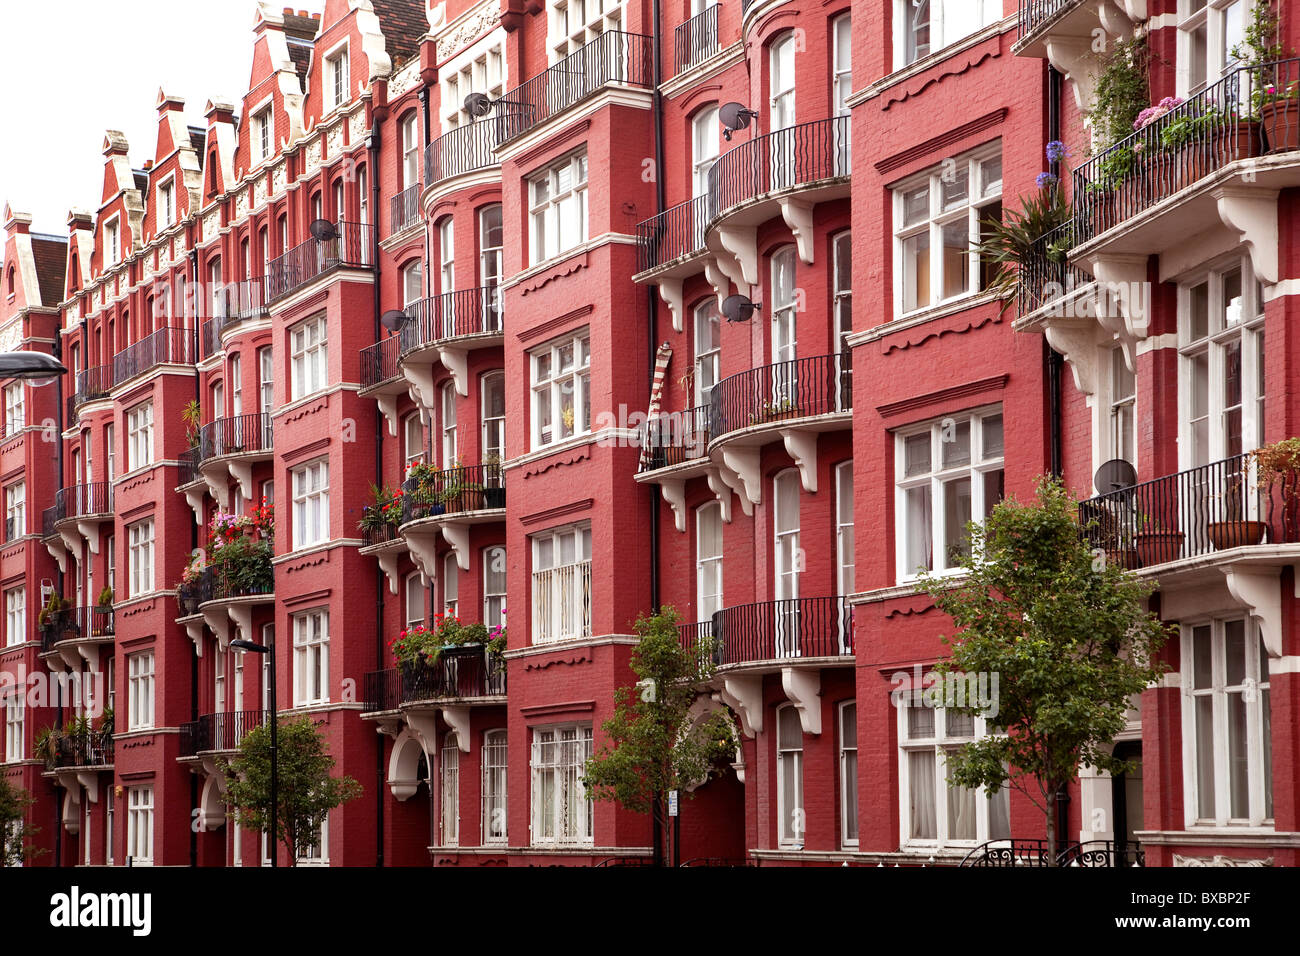 Row of houses with brick buildings, Victorian style, in London, England, United Kingdom, Europe - Stock Image